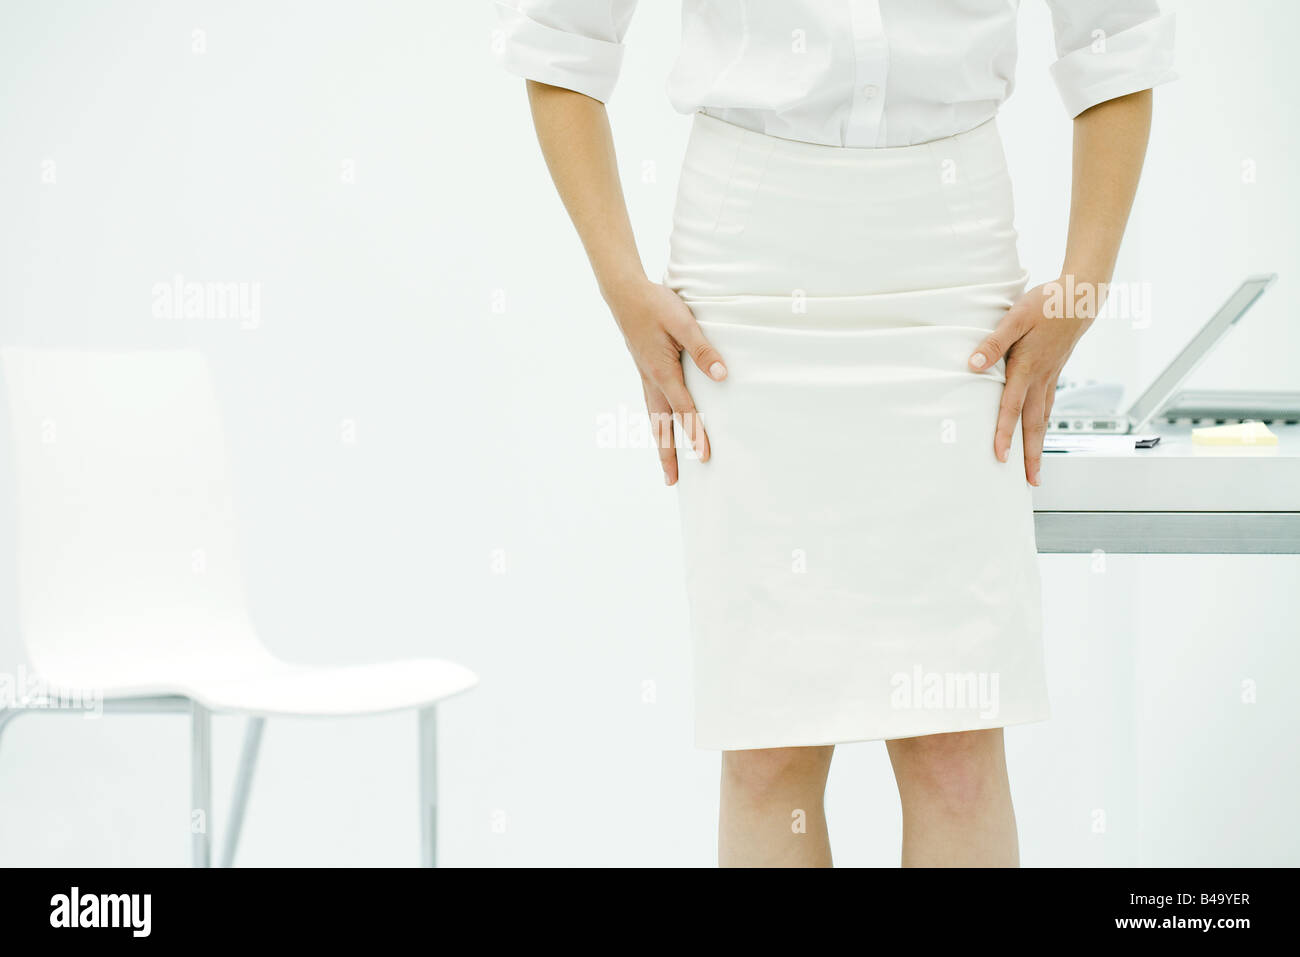 Professional woman in office, adjusting wrinkled skirt, cropped view - Stock Image